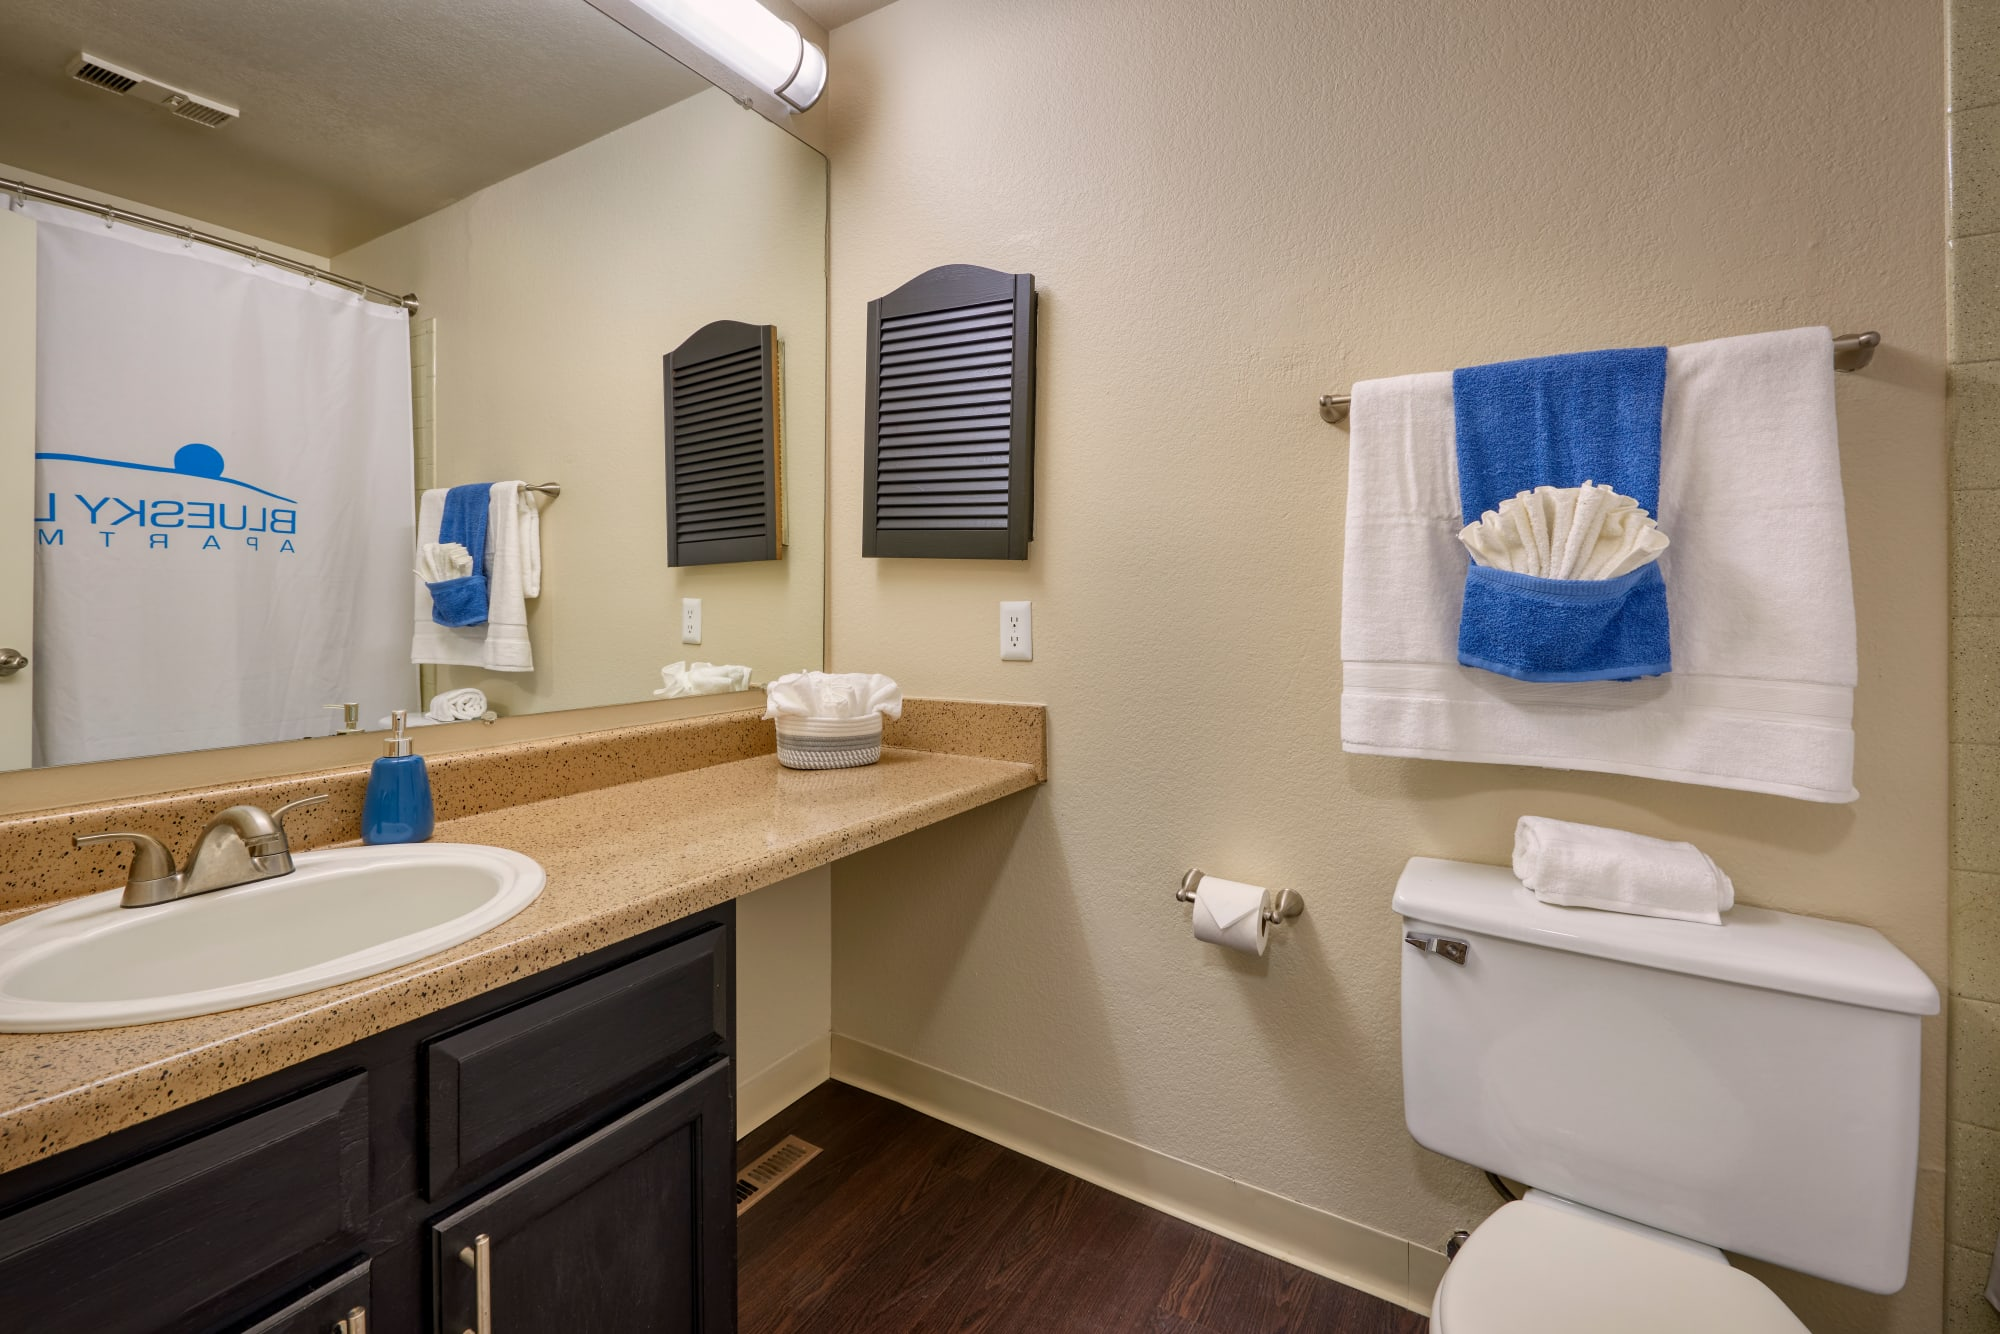 Renovated bathroom with a tub at Bluesky Landing Apartments in Lakewood, Colorado